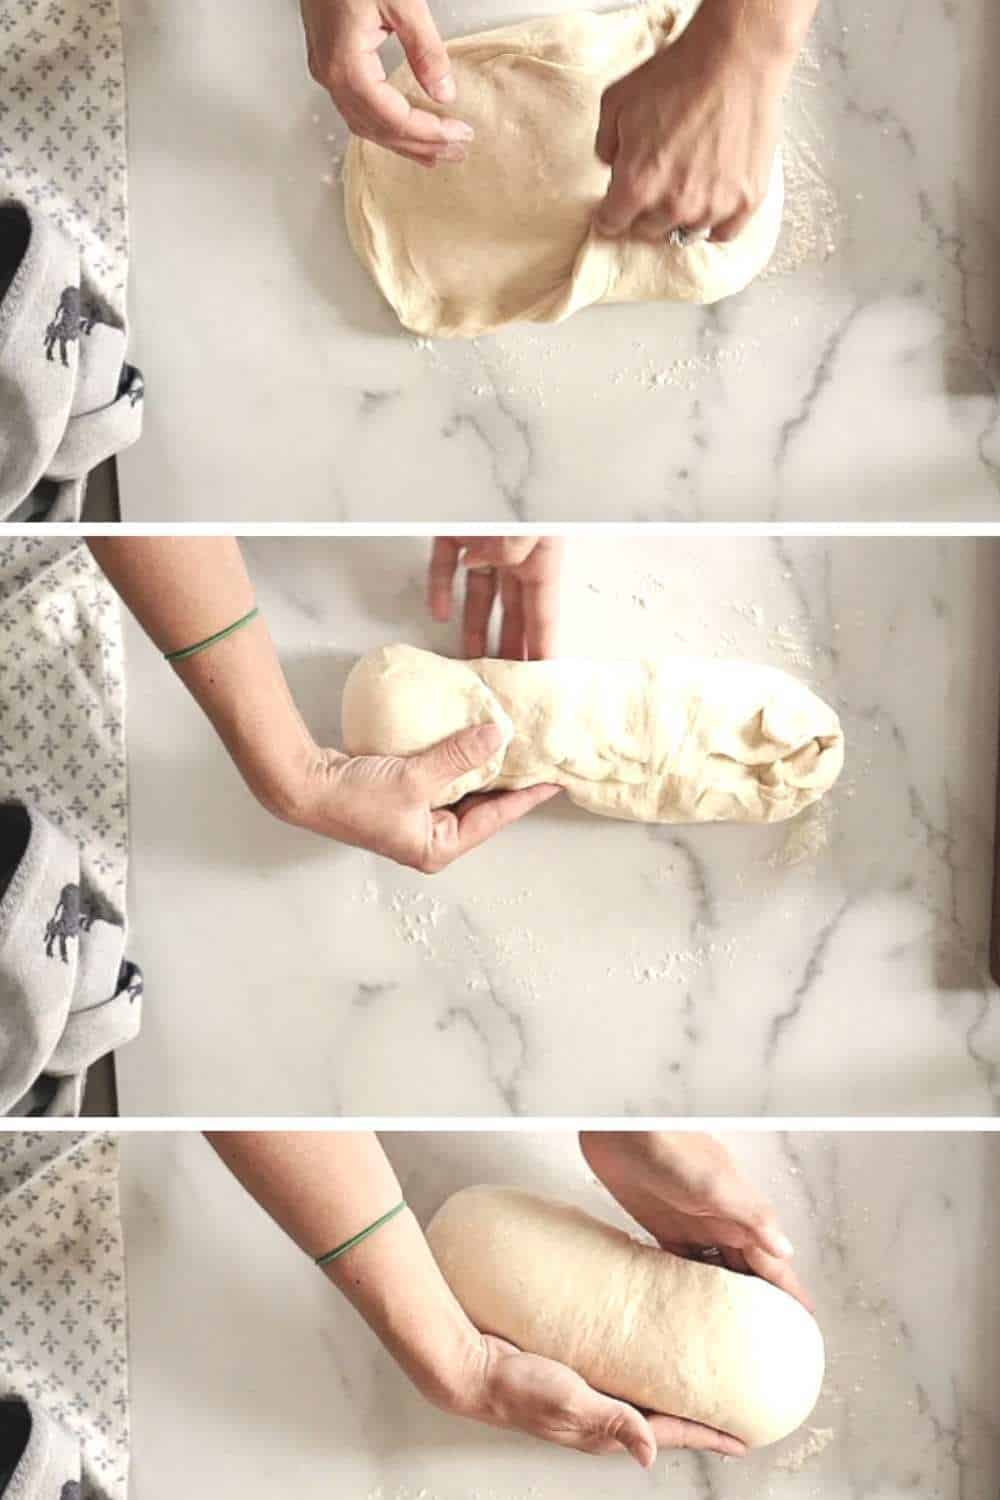 process of shaping sandwich loaf